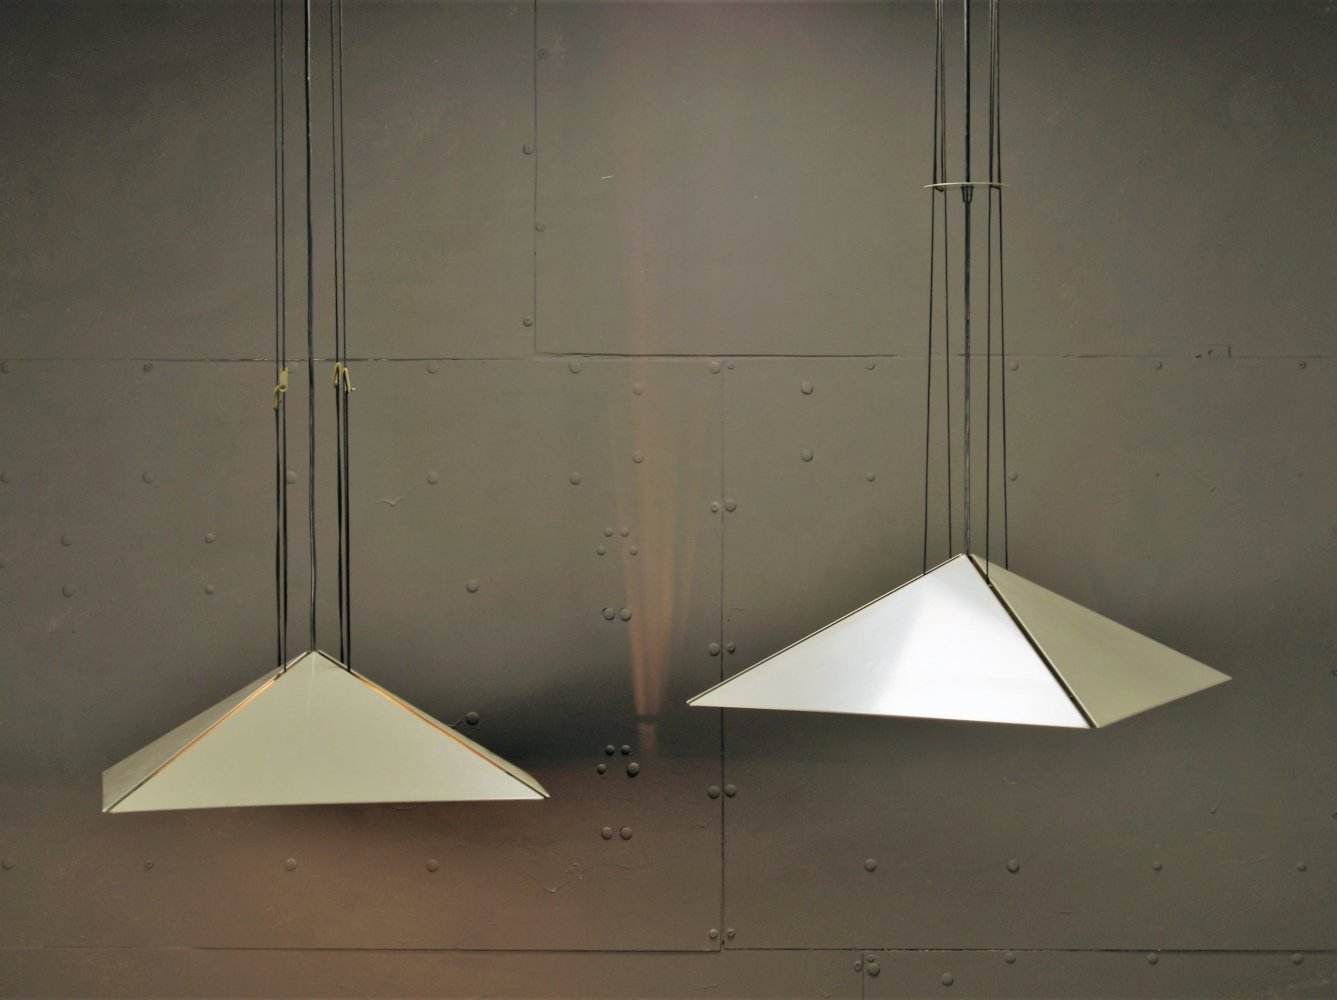 Pair of hanging lamps by Rodney Kinsman for Bieffeplast, 1970s